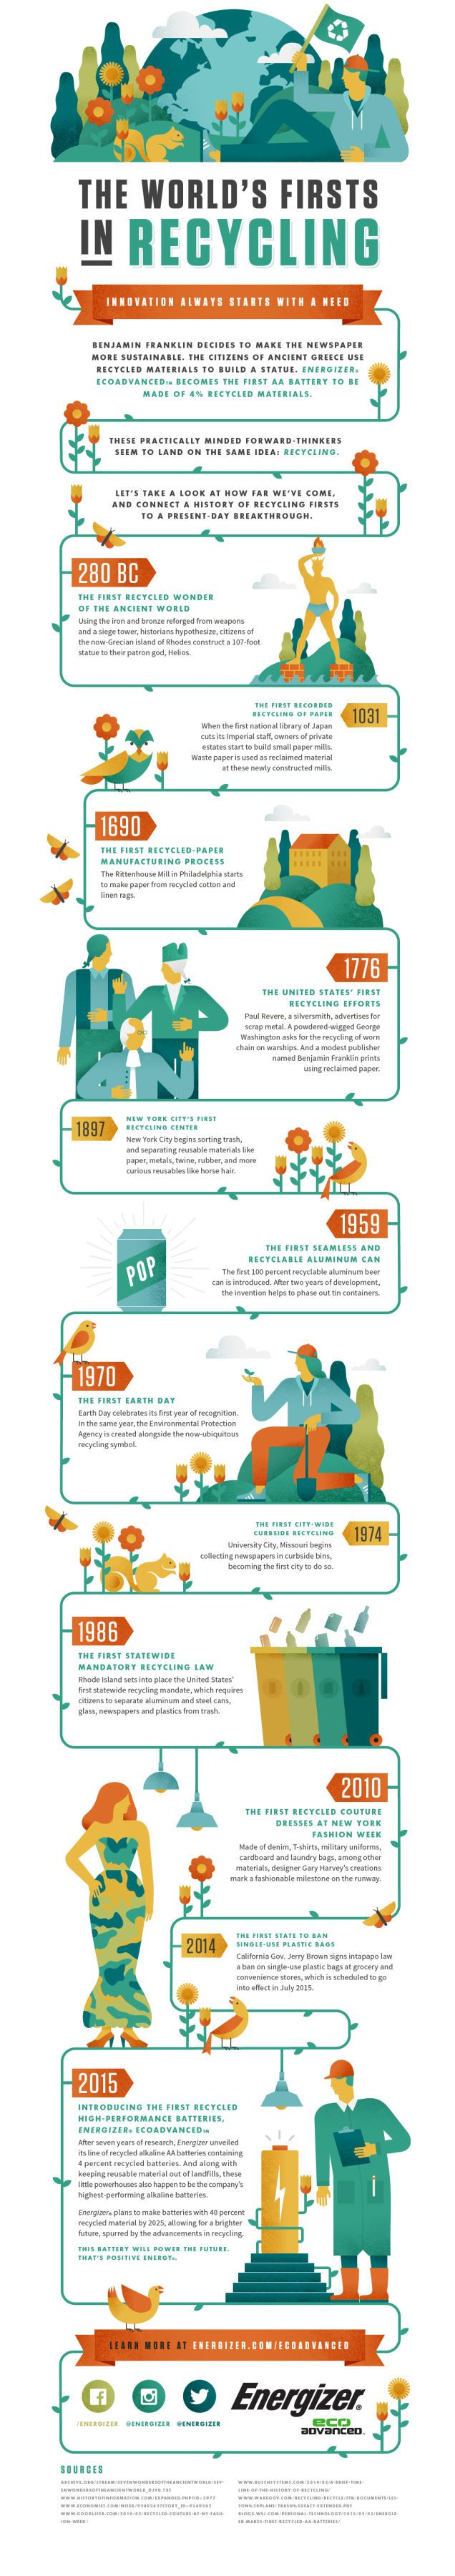 The World's Firsts in Recycling Infographic Timeline | Lemonly